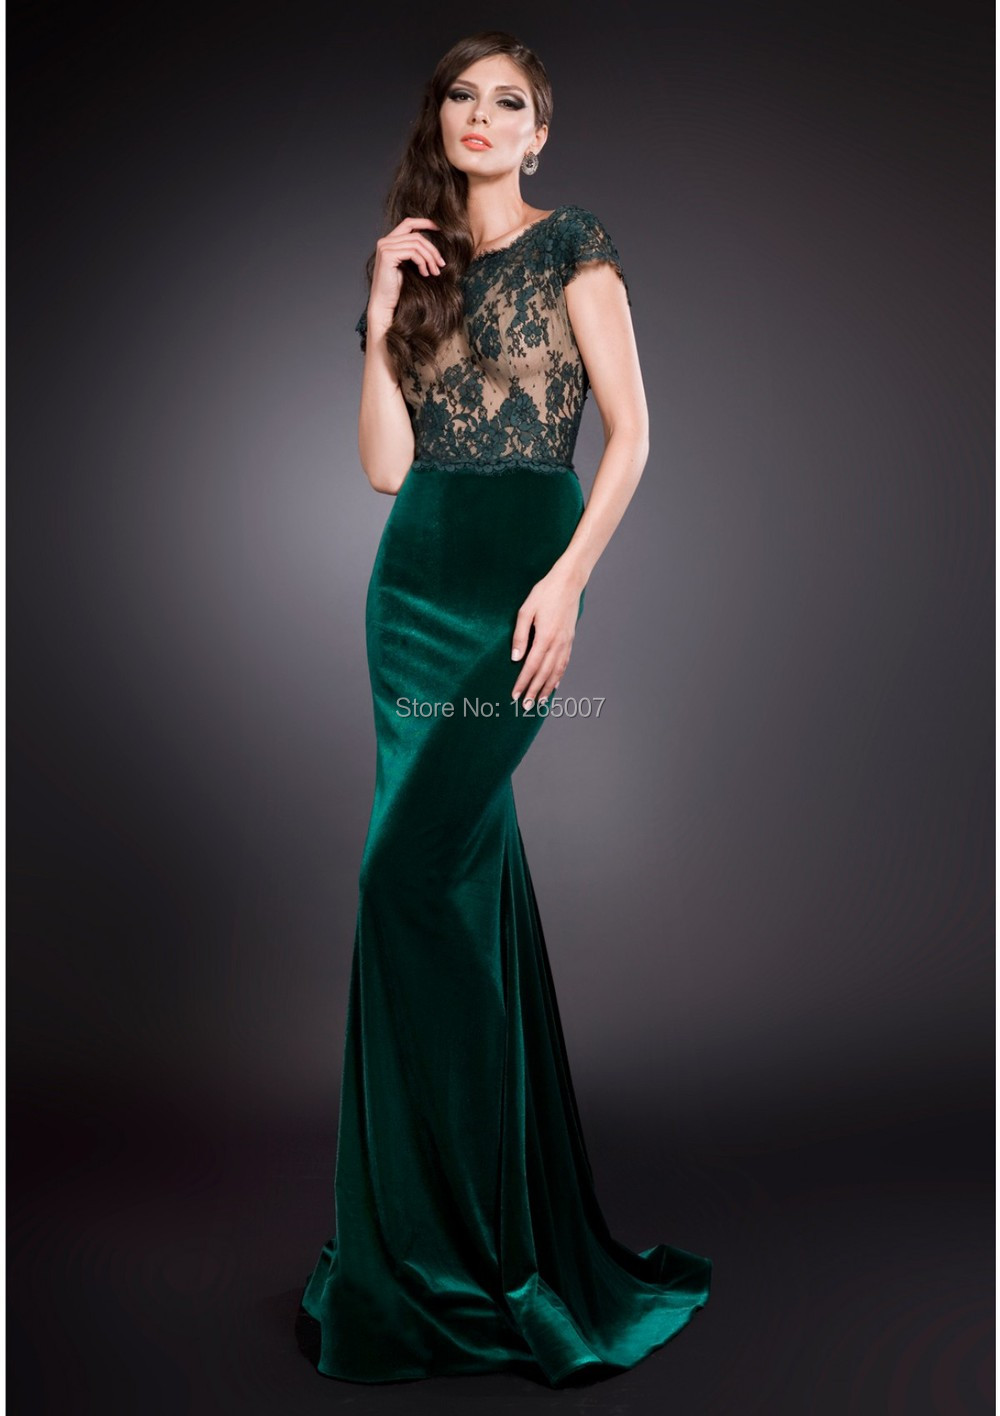 New Arrival Boat Neck Short Sleeves See Through Lace Top Green Long Mermaid Velvet Evening Dress Gown 2015 Formal Maxi Dress(China (Mainland))